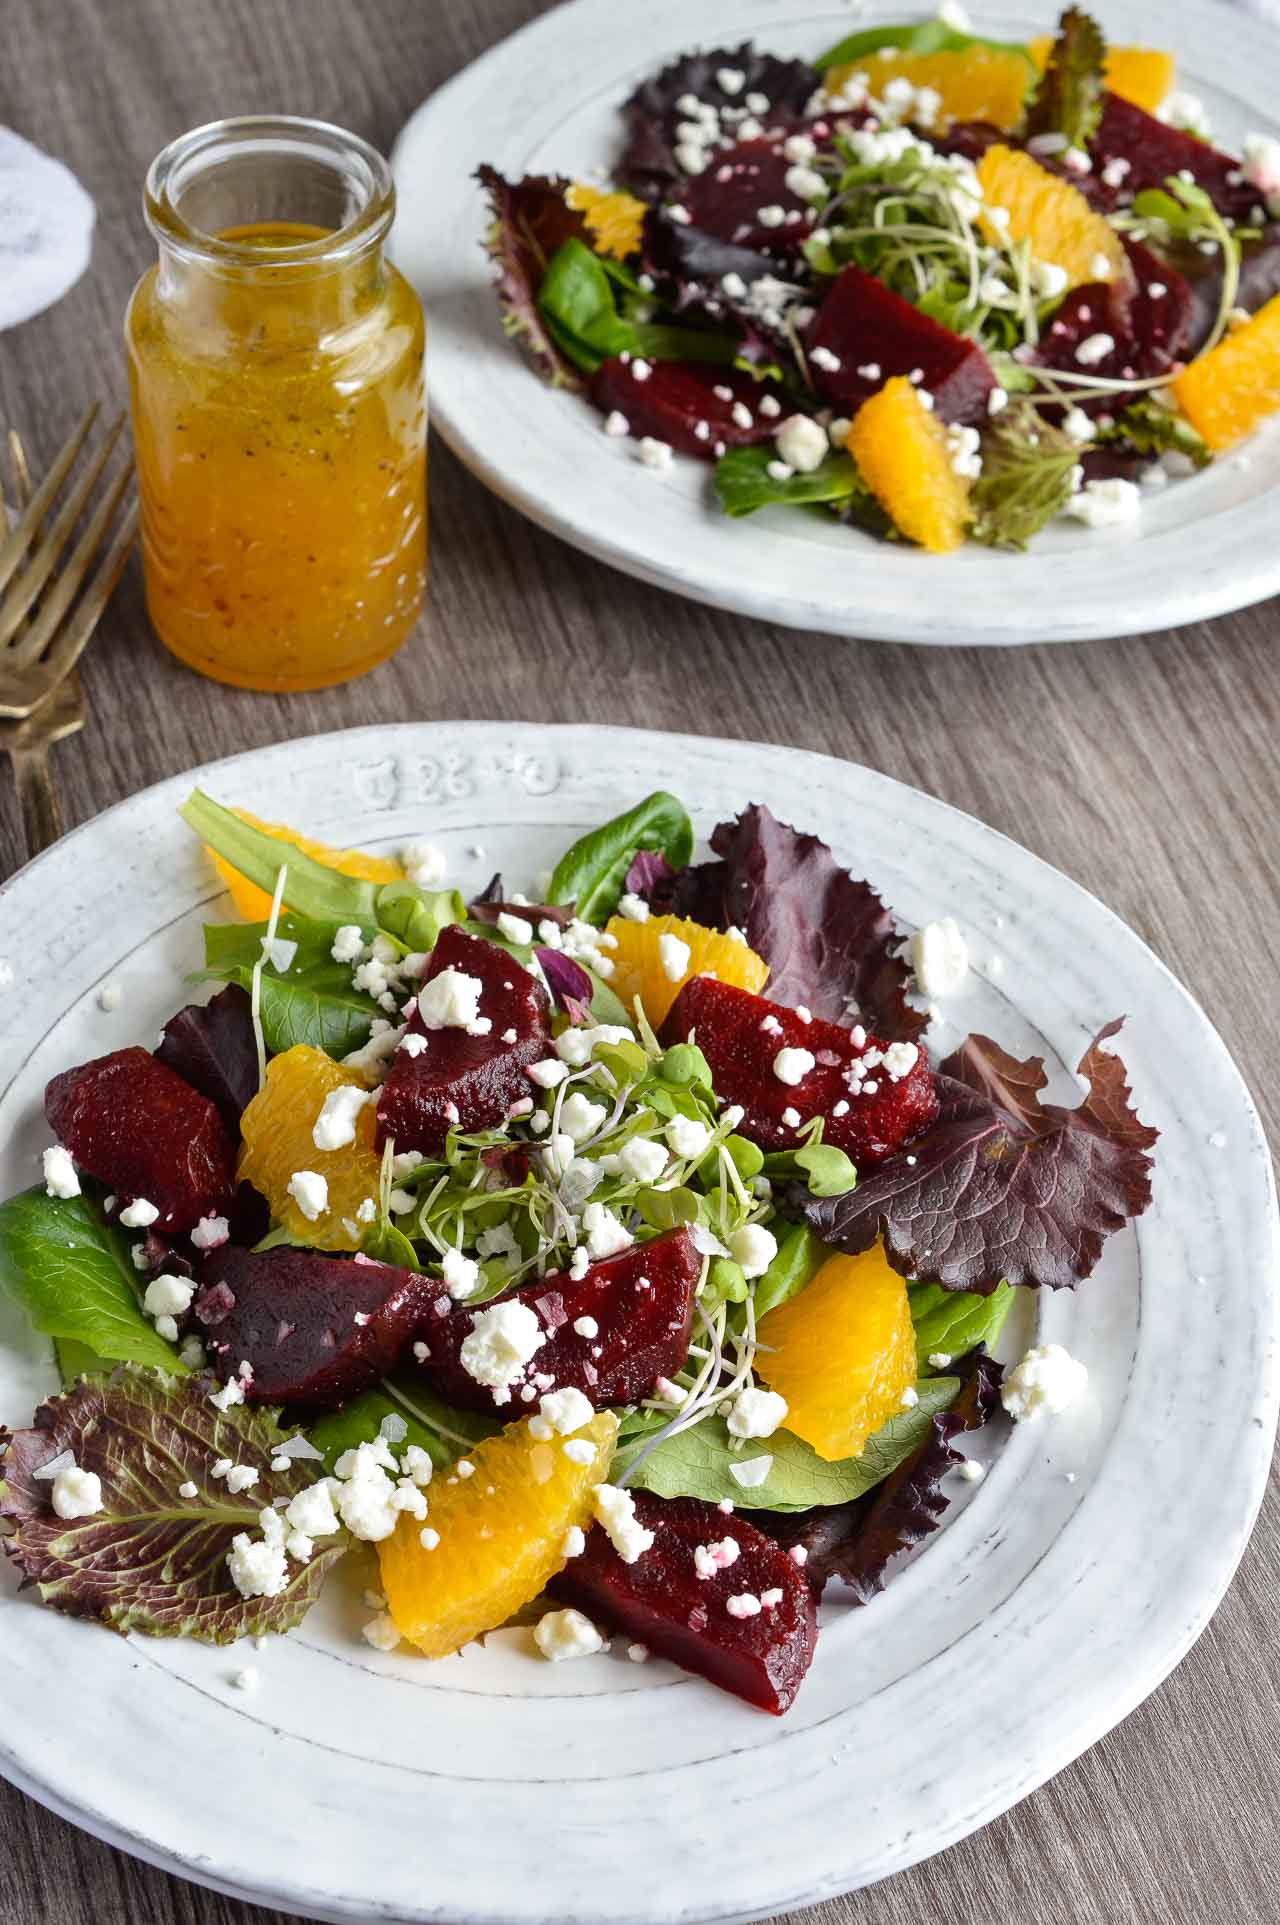 Slow Cooker Beets with Creamy Goat Cheese Sauce picture